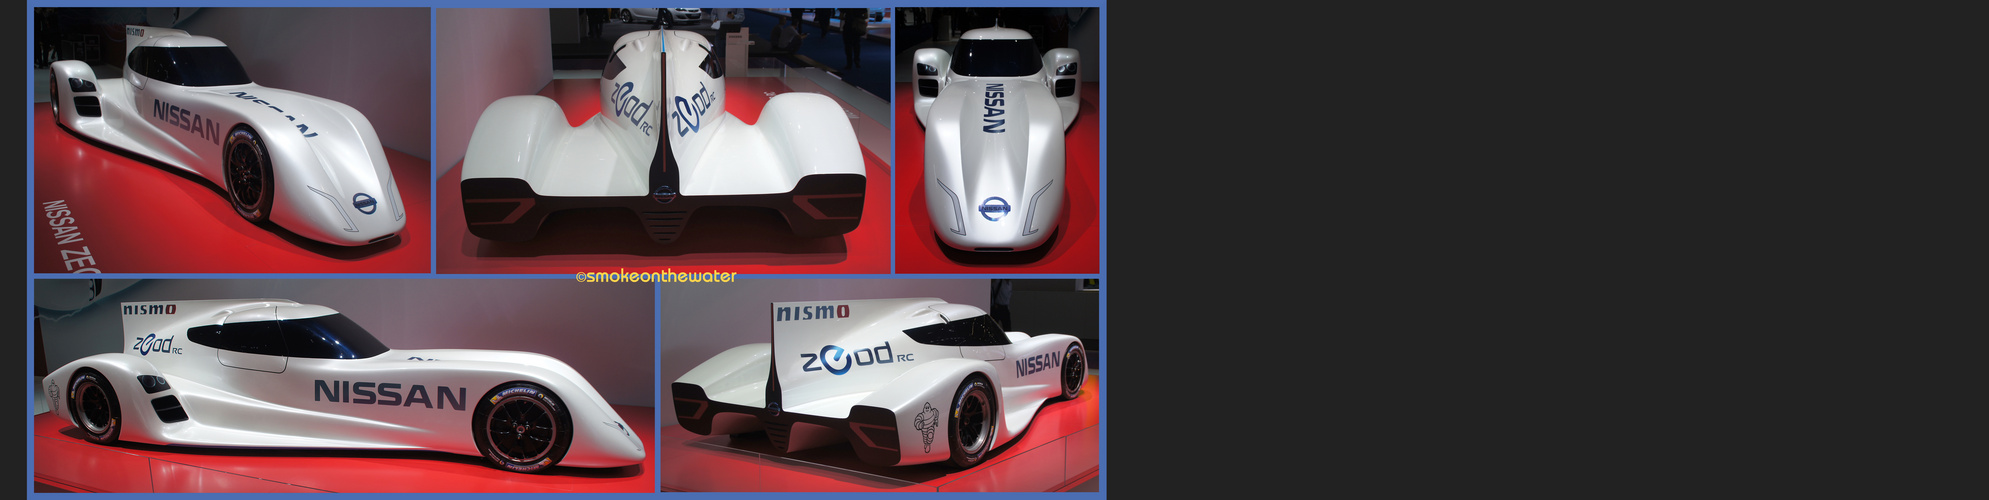 Nismo ZEOD RC electric Le Mans 2014